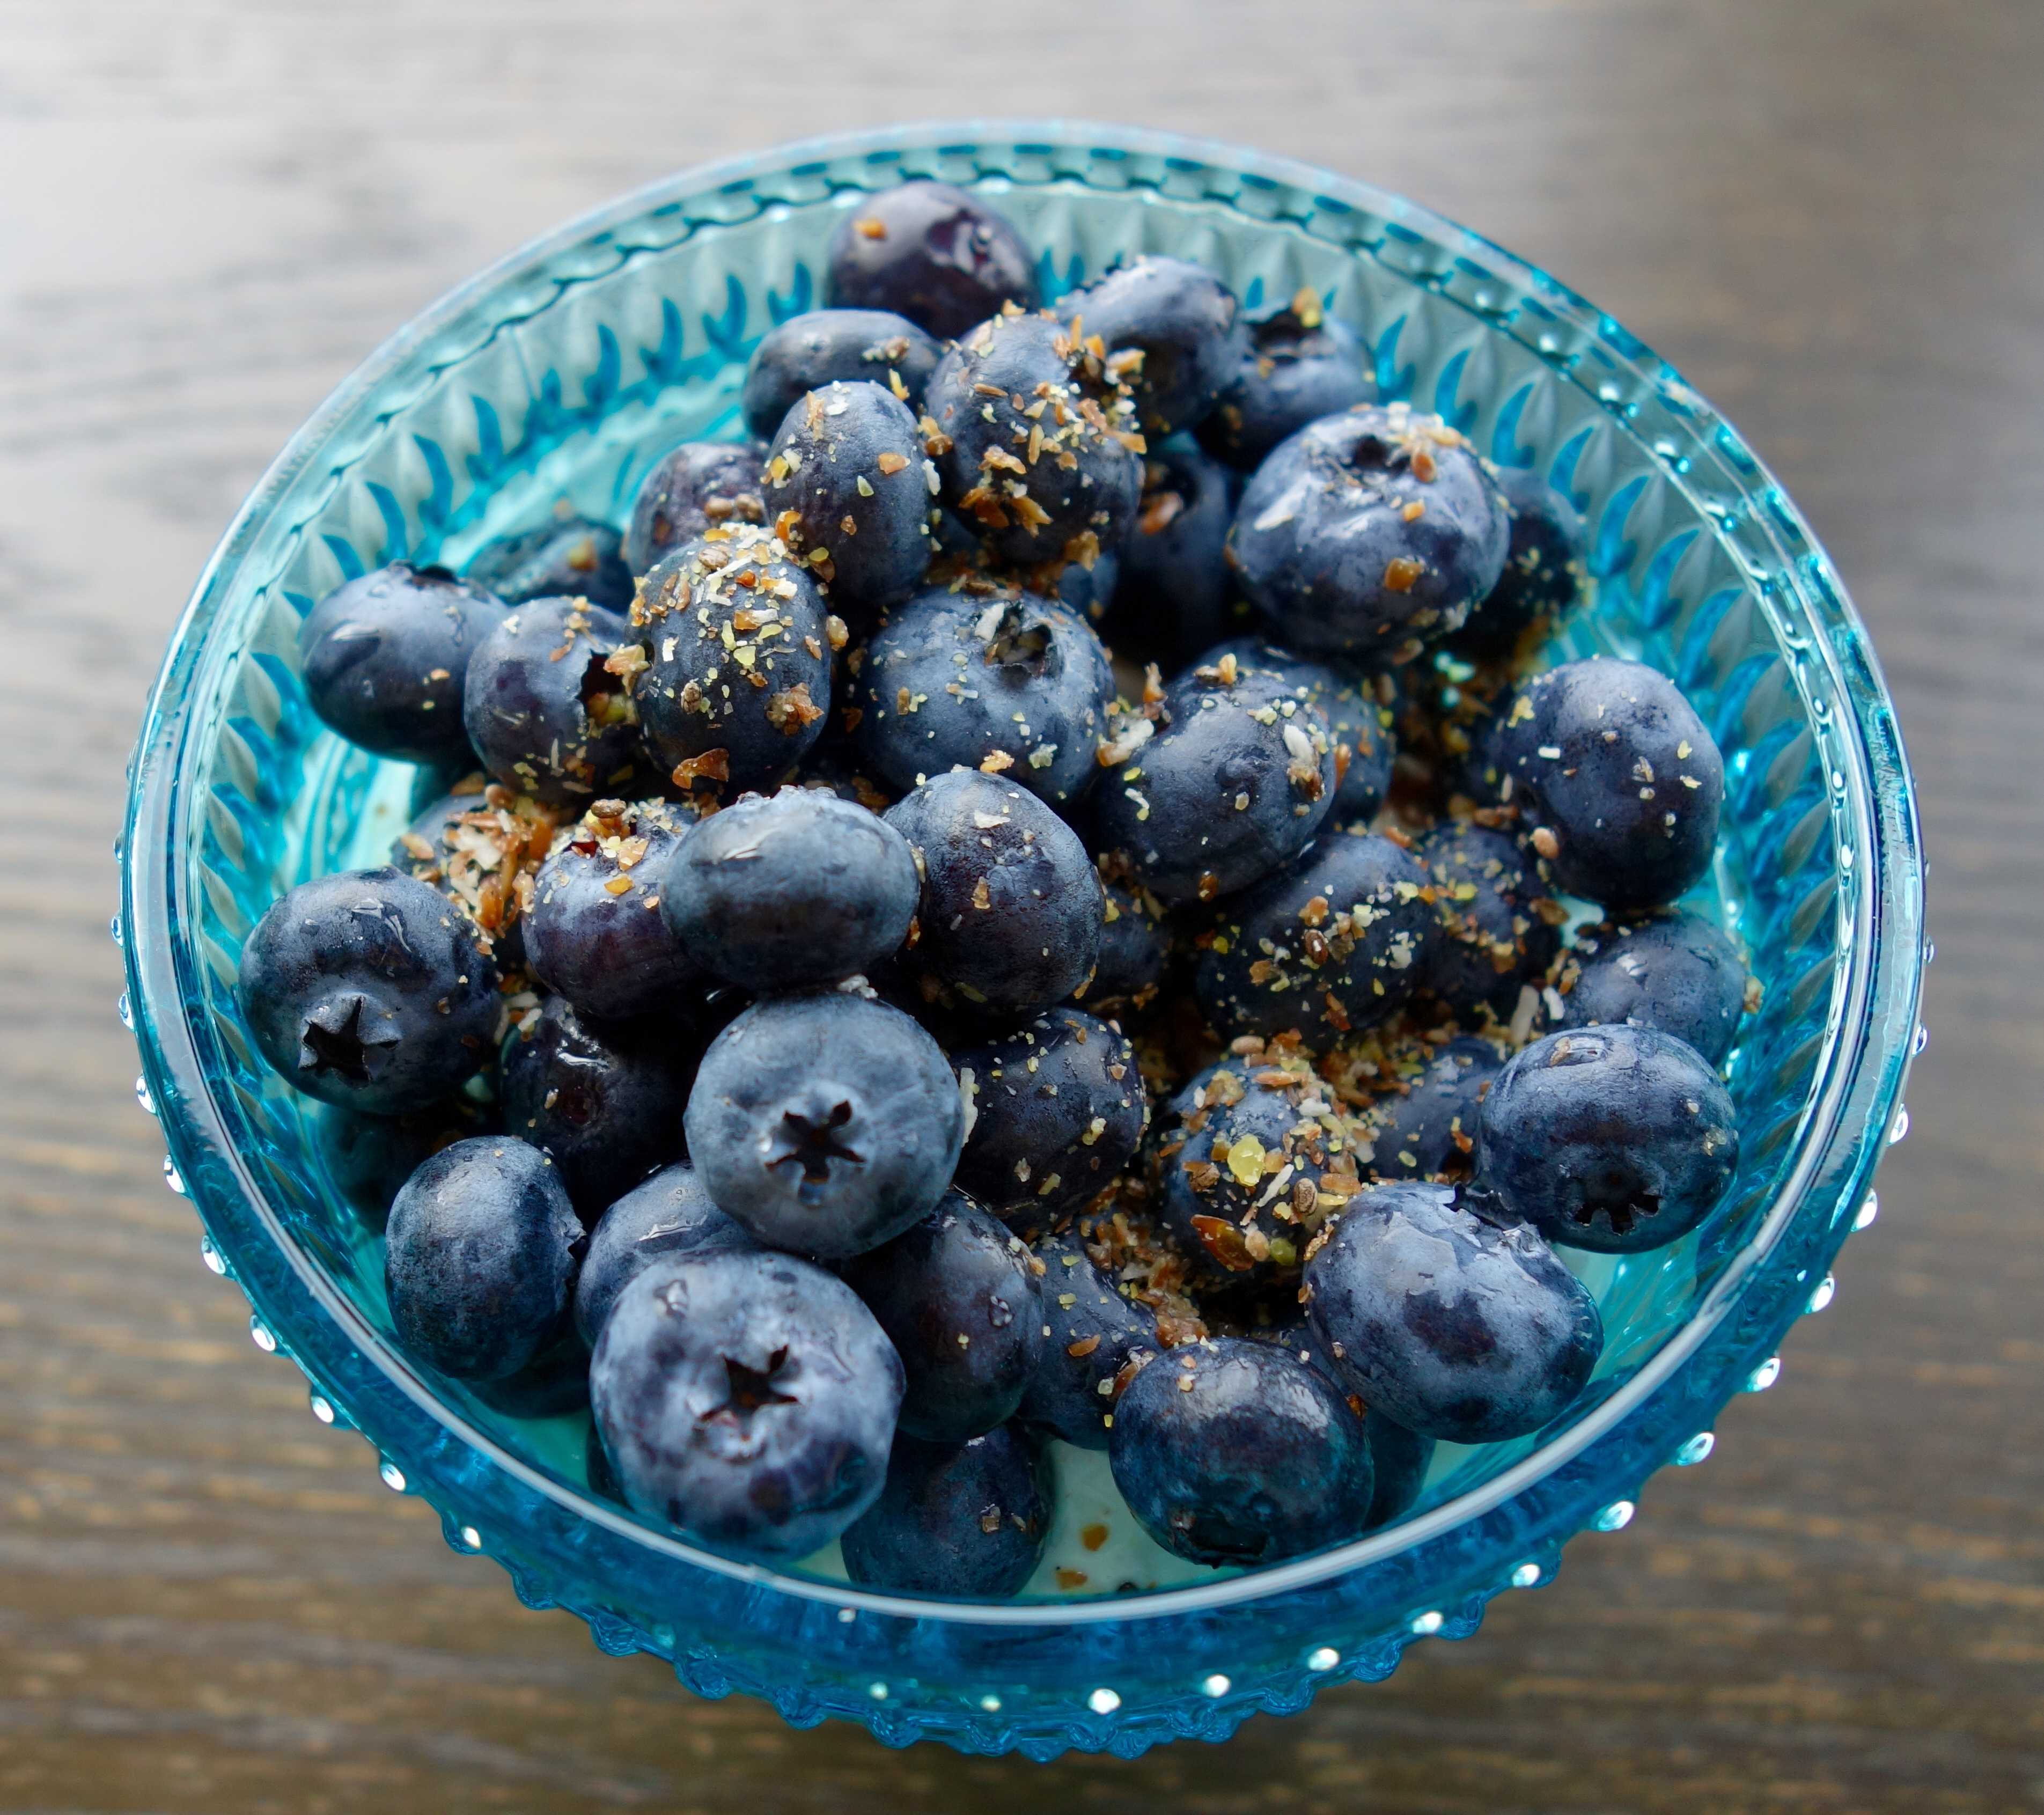 Zucchini or  blueberry surplus? Make this for breakfast.